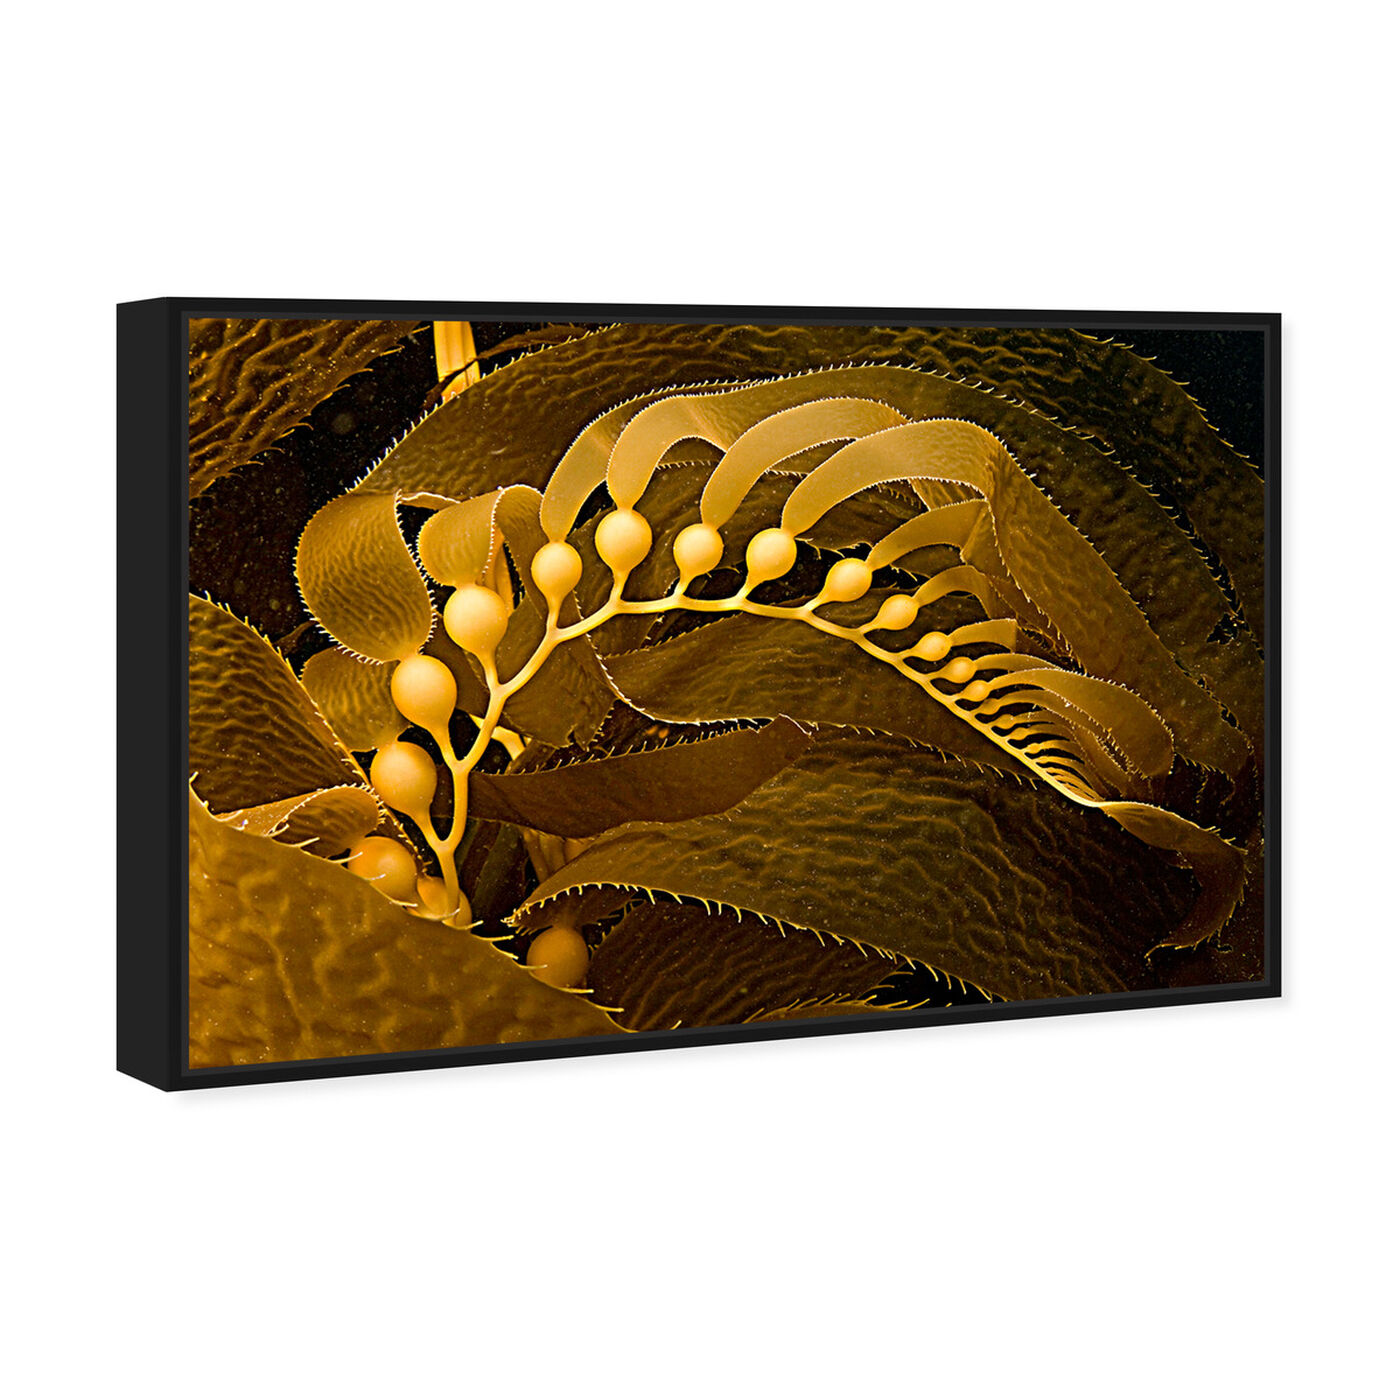 Angled view of Giant Kelp by David Fleetham featuring nautical and coastal and marine life art.